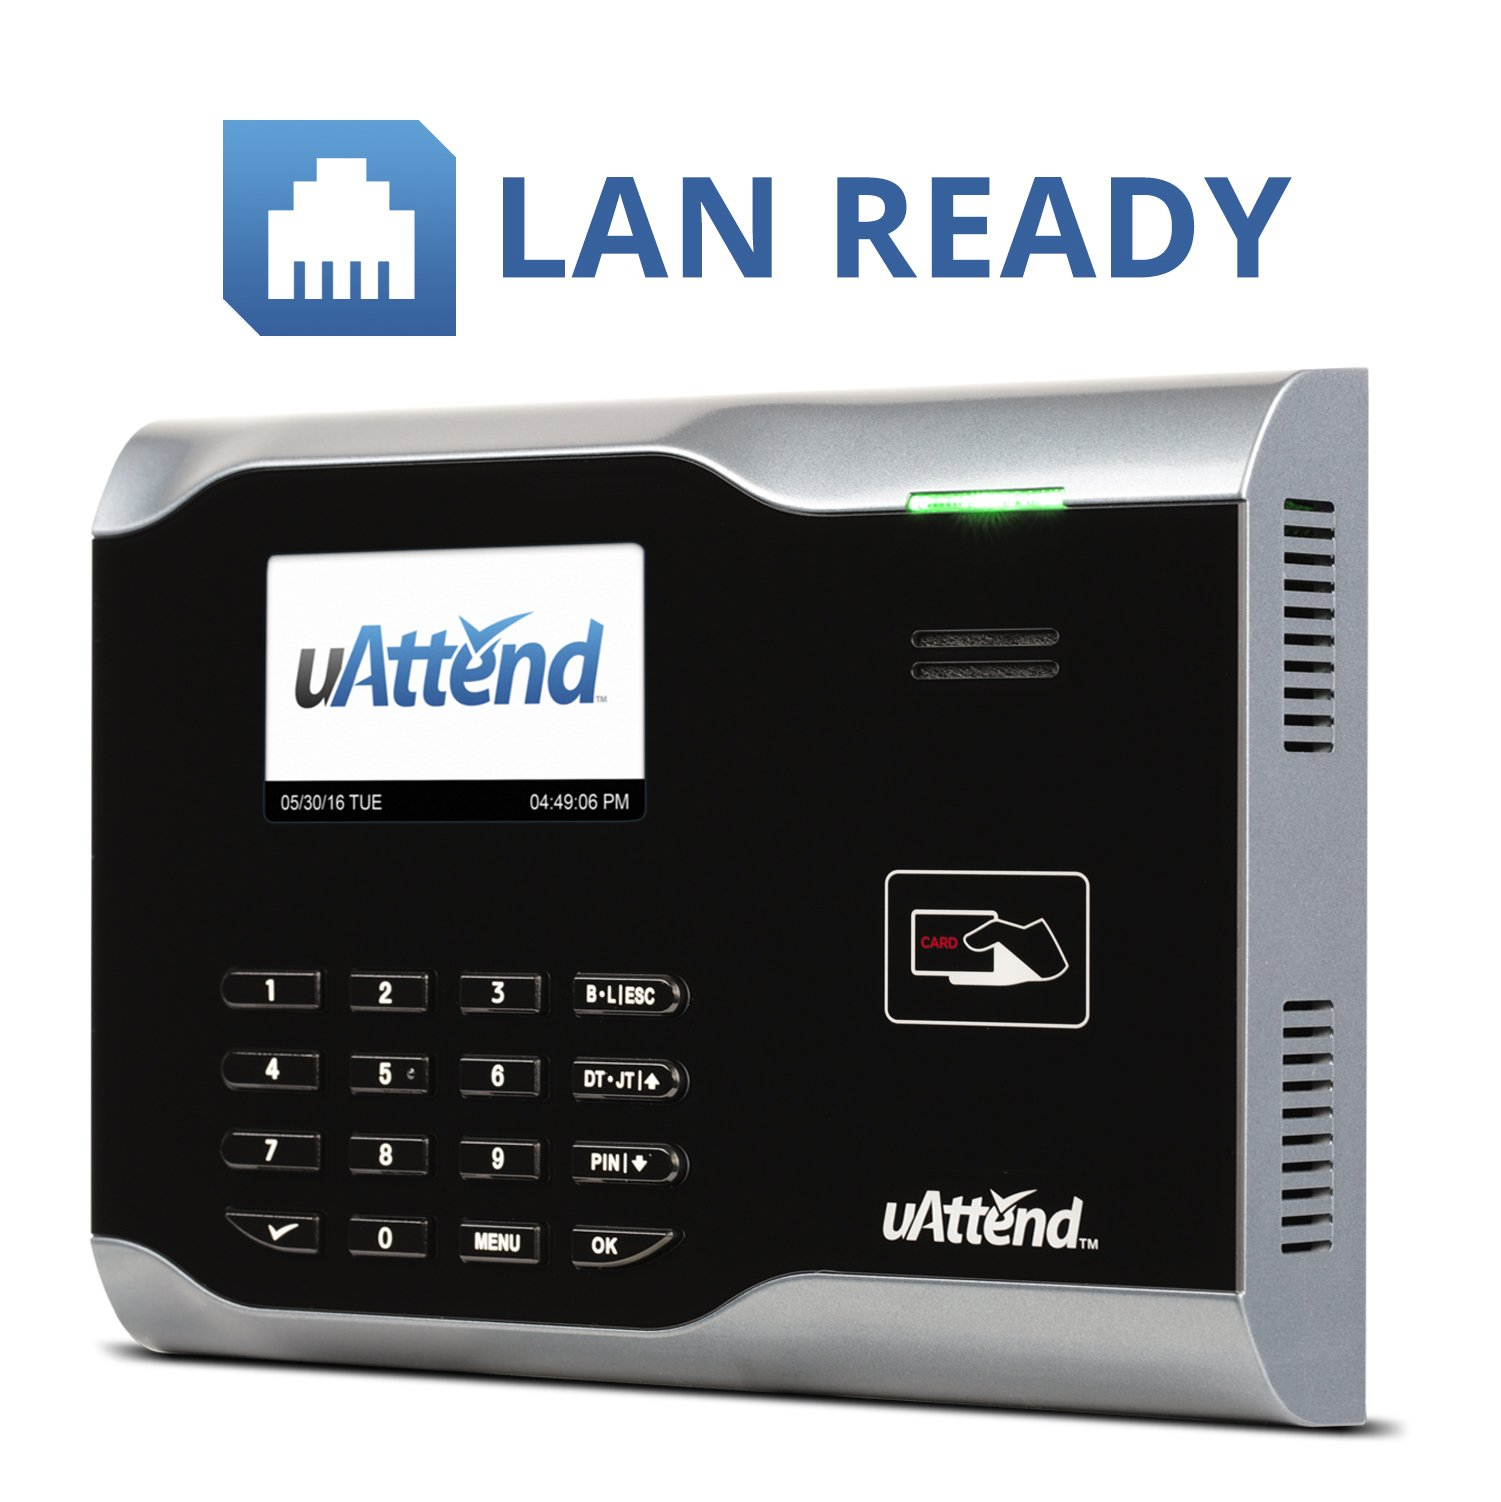 uAttend CB6000 Employee Management Time Clock